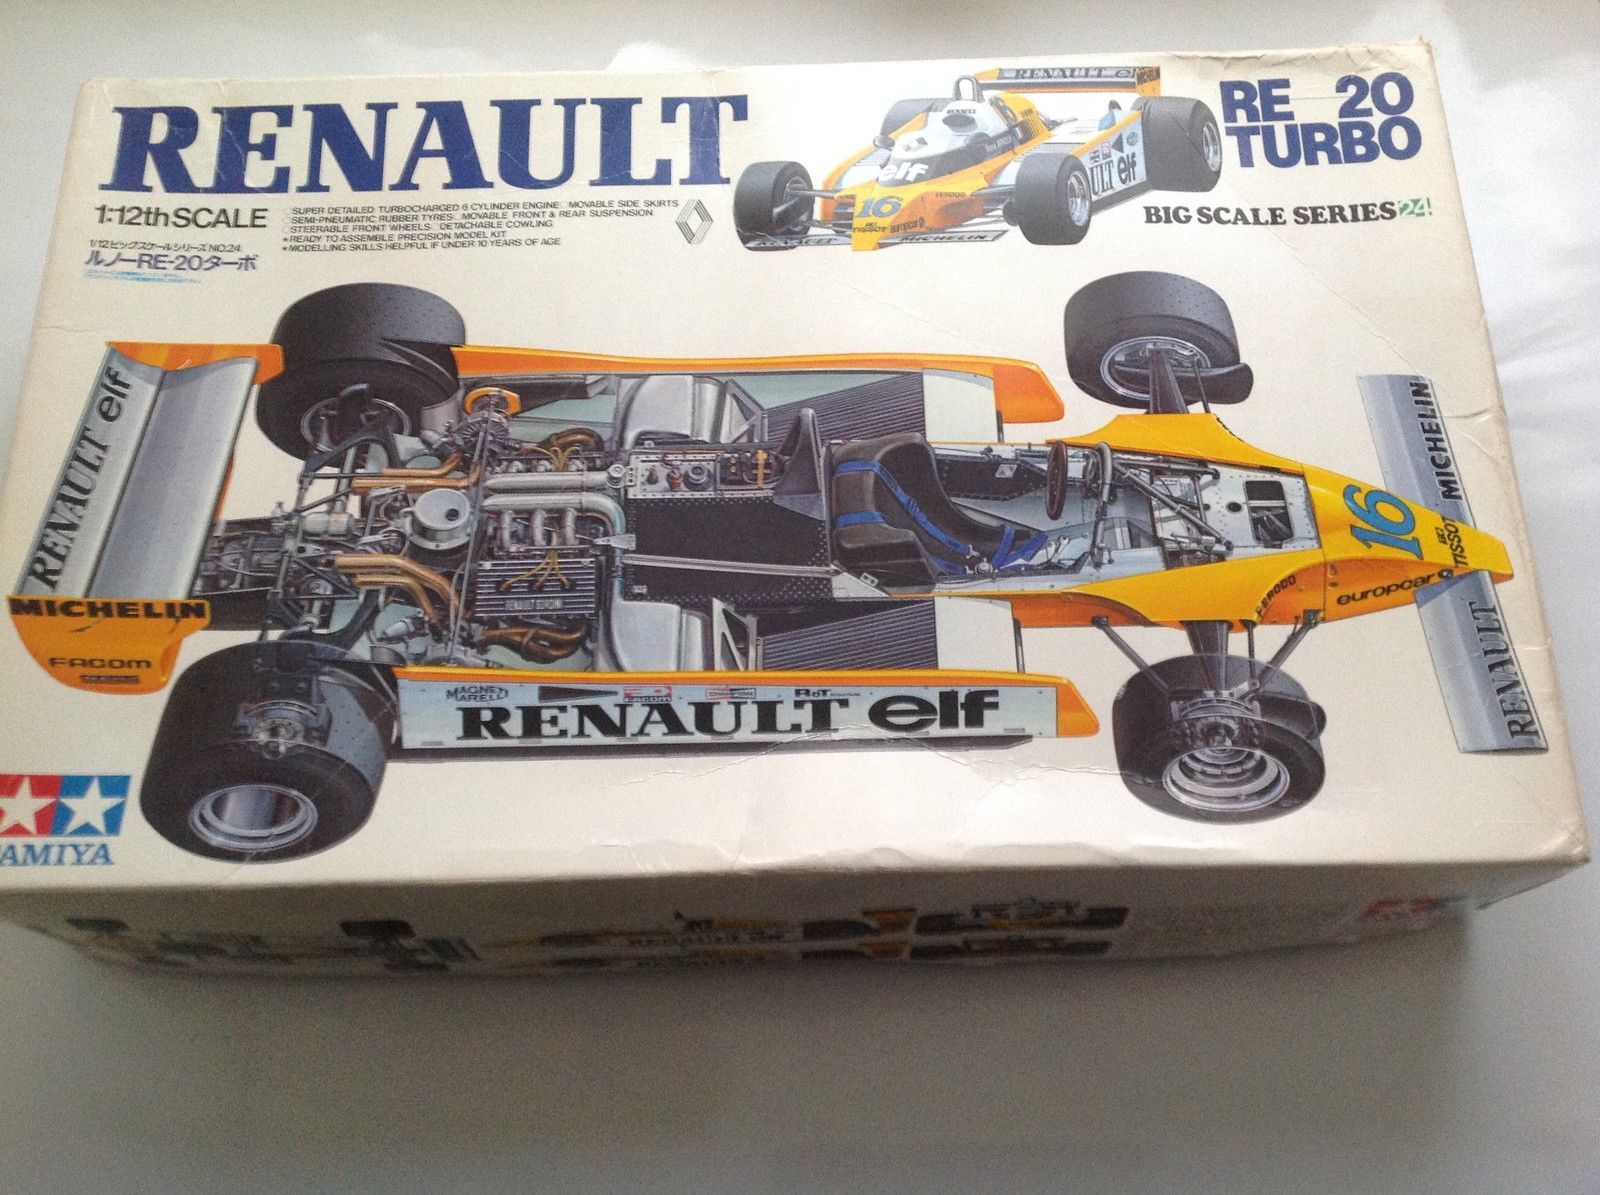 hobby kits 1 12 scale. Vintage Tamiya 1 12 Renault Re 20 Turbo F1 Jabouille Arnoux Race Car Kit | EBay Hobby Kits Scale T